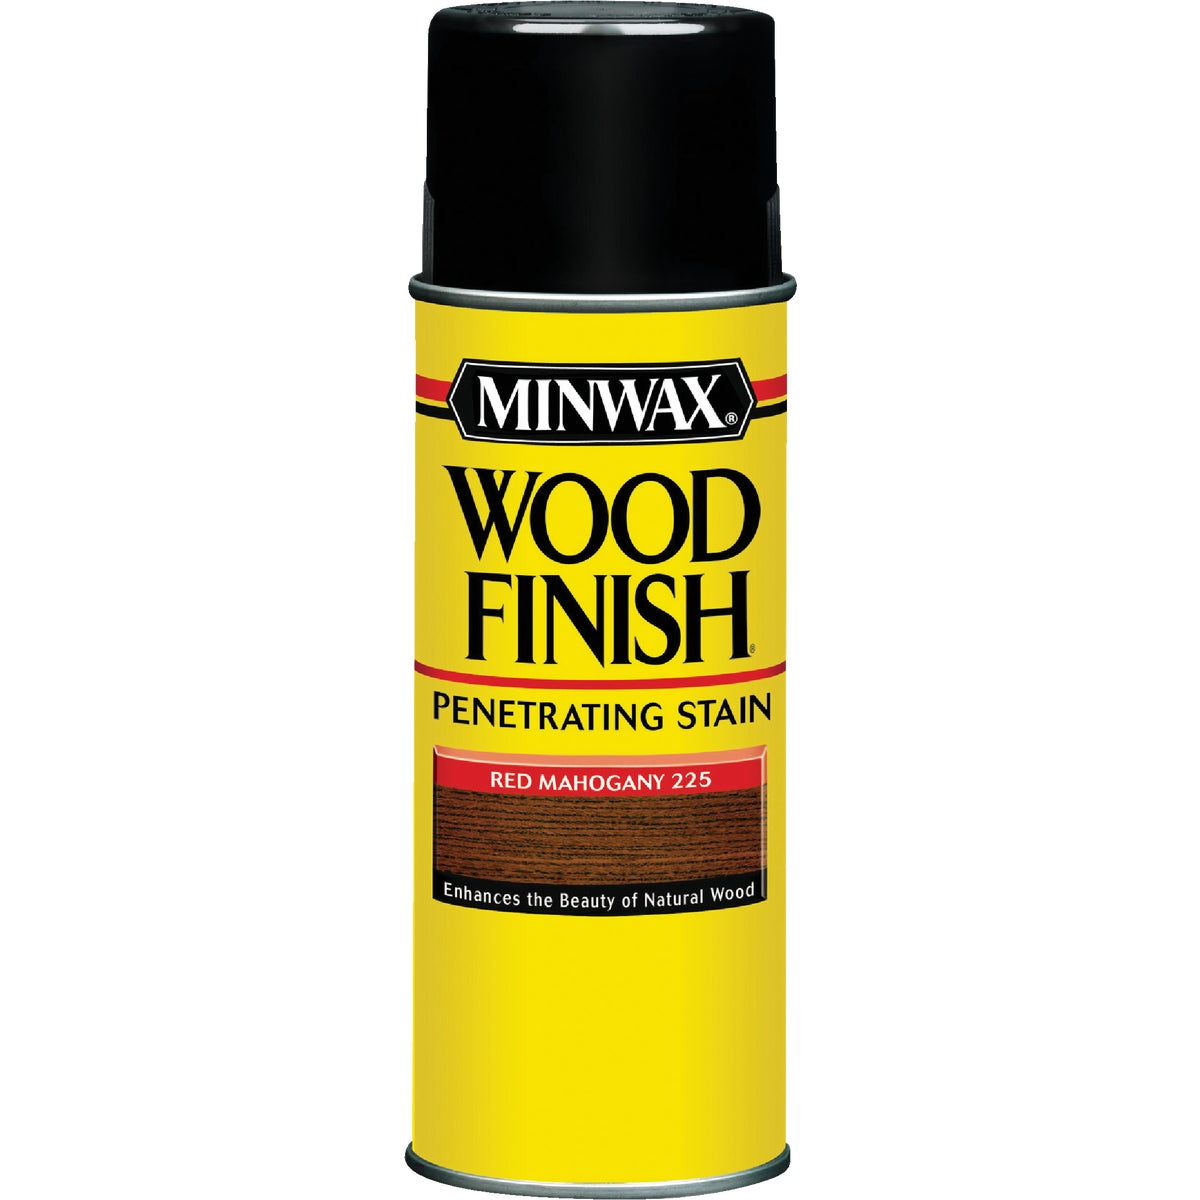 RED MAHOGANY SPRAY STAIN - 32250 by Minwax Company